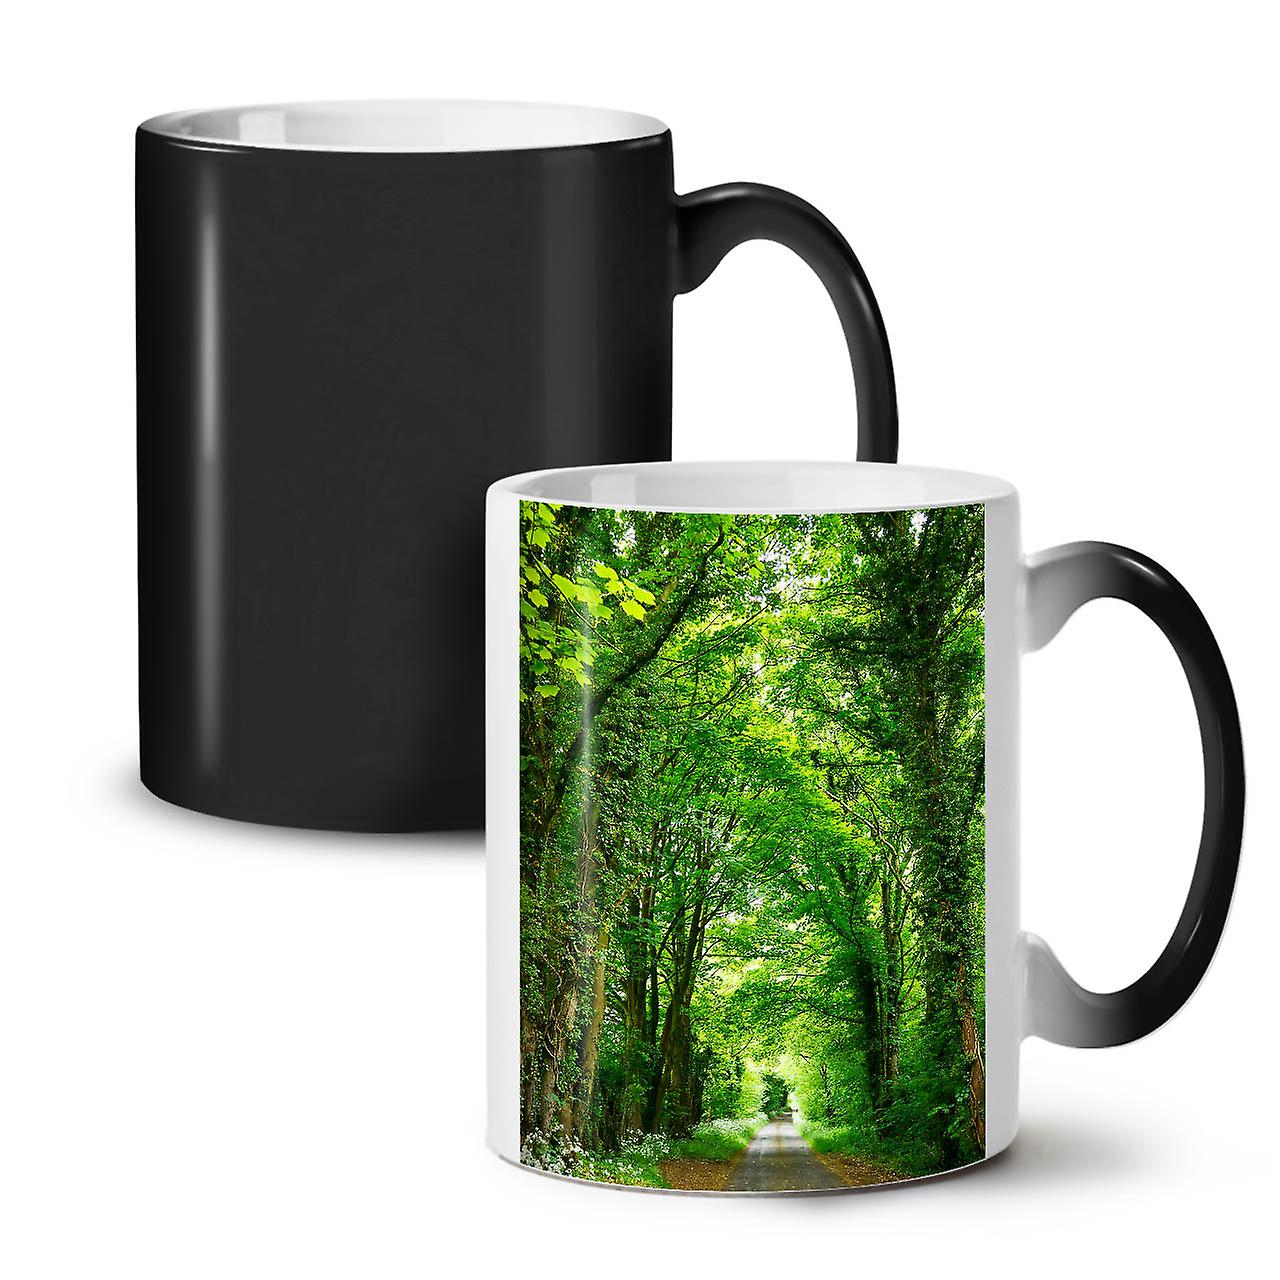 Café Céramique Black Thé Tasse Couleur Road New Green Forest Changeante OzWellcoda 11 6fb7gvYy